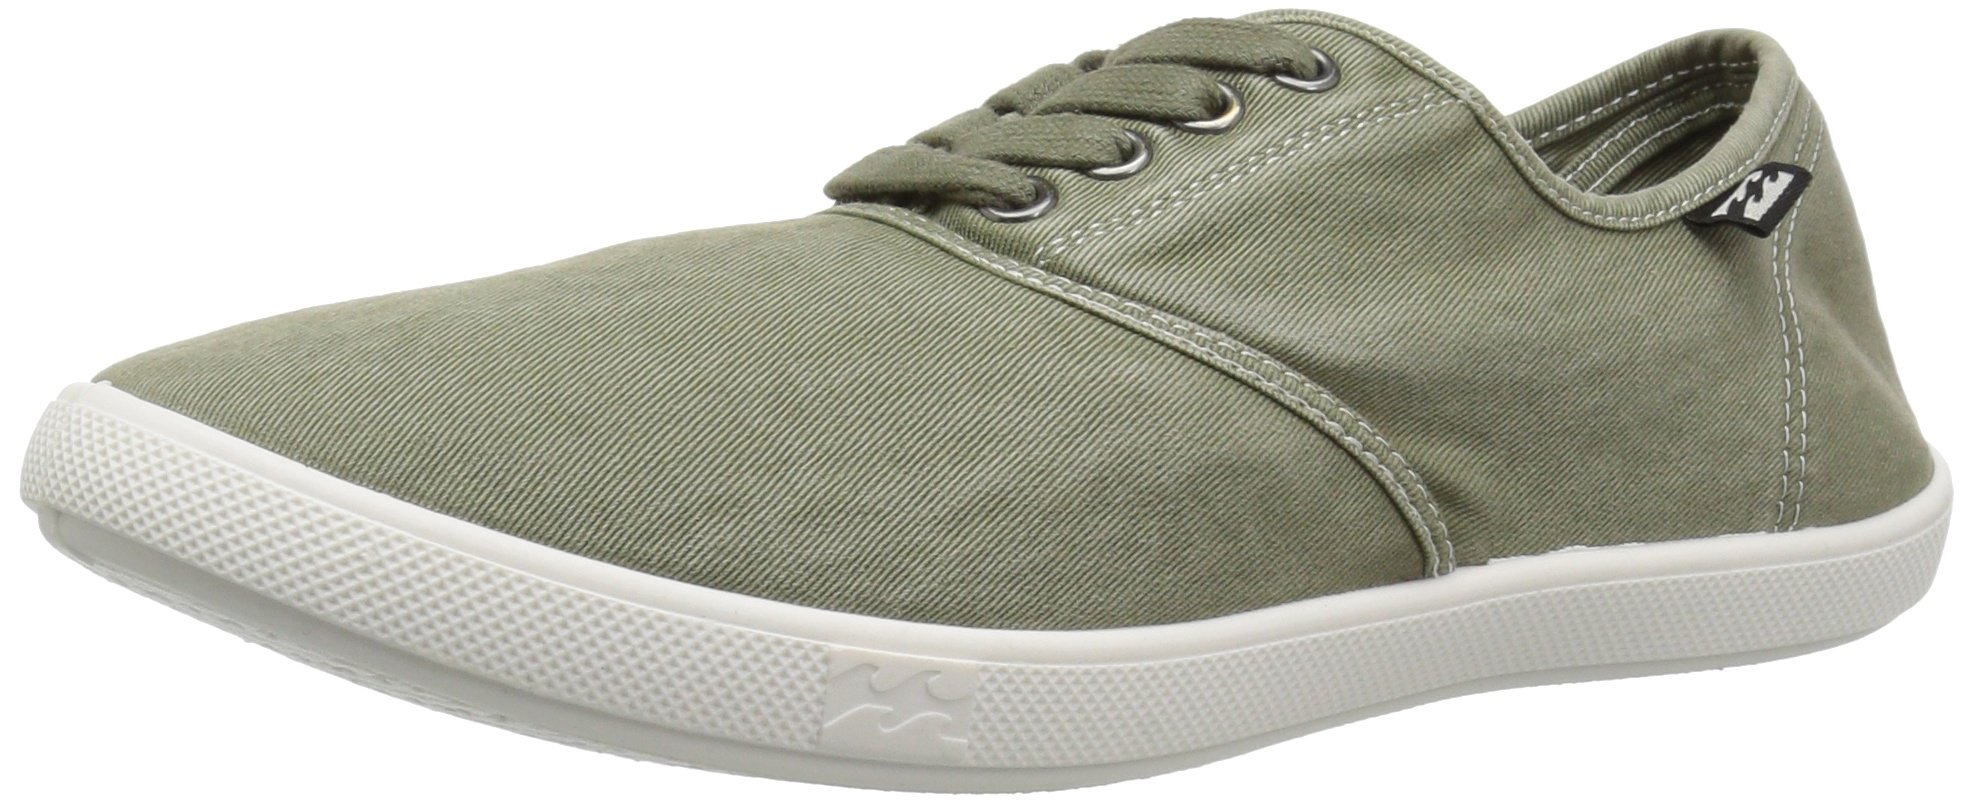 Billabong Women's Addy Sneaker, Seagrass, 7 M US